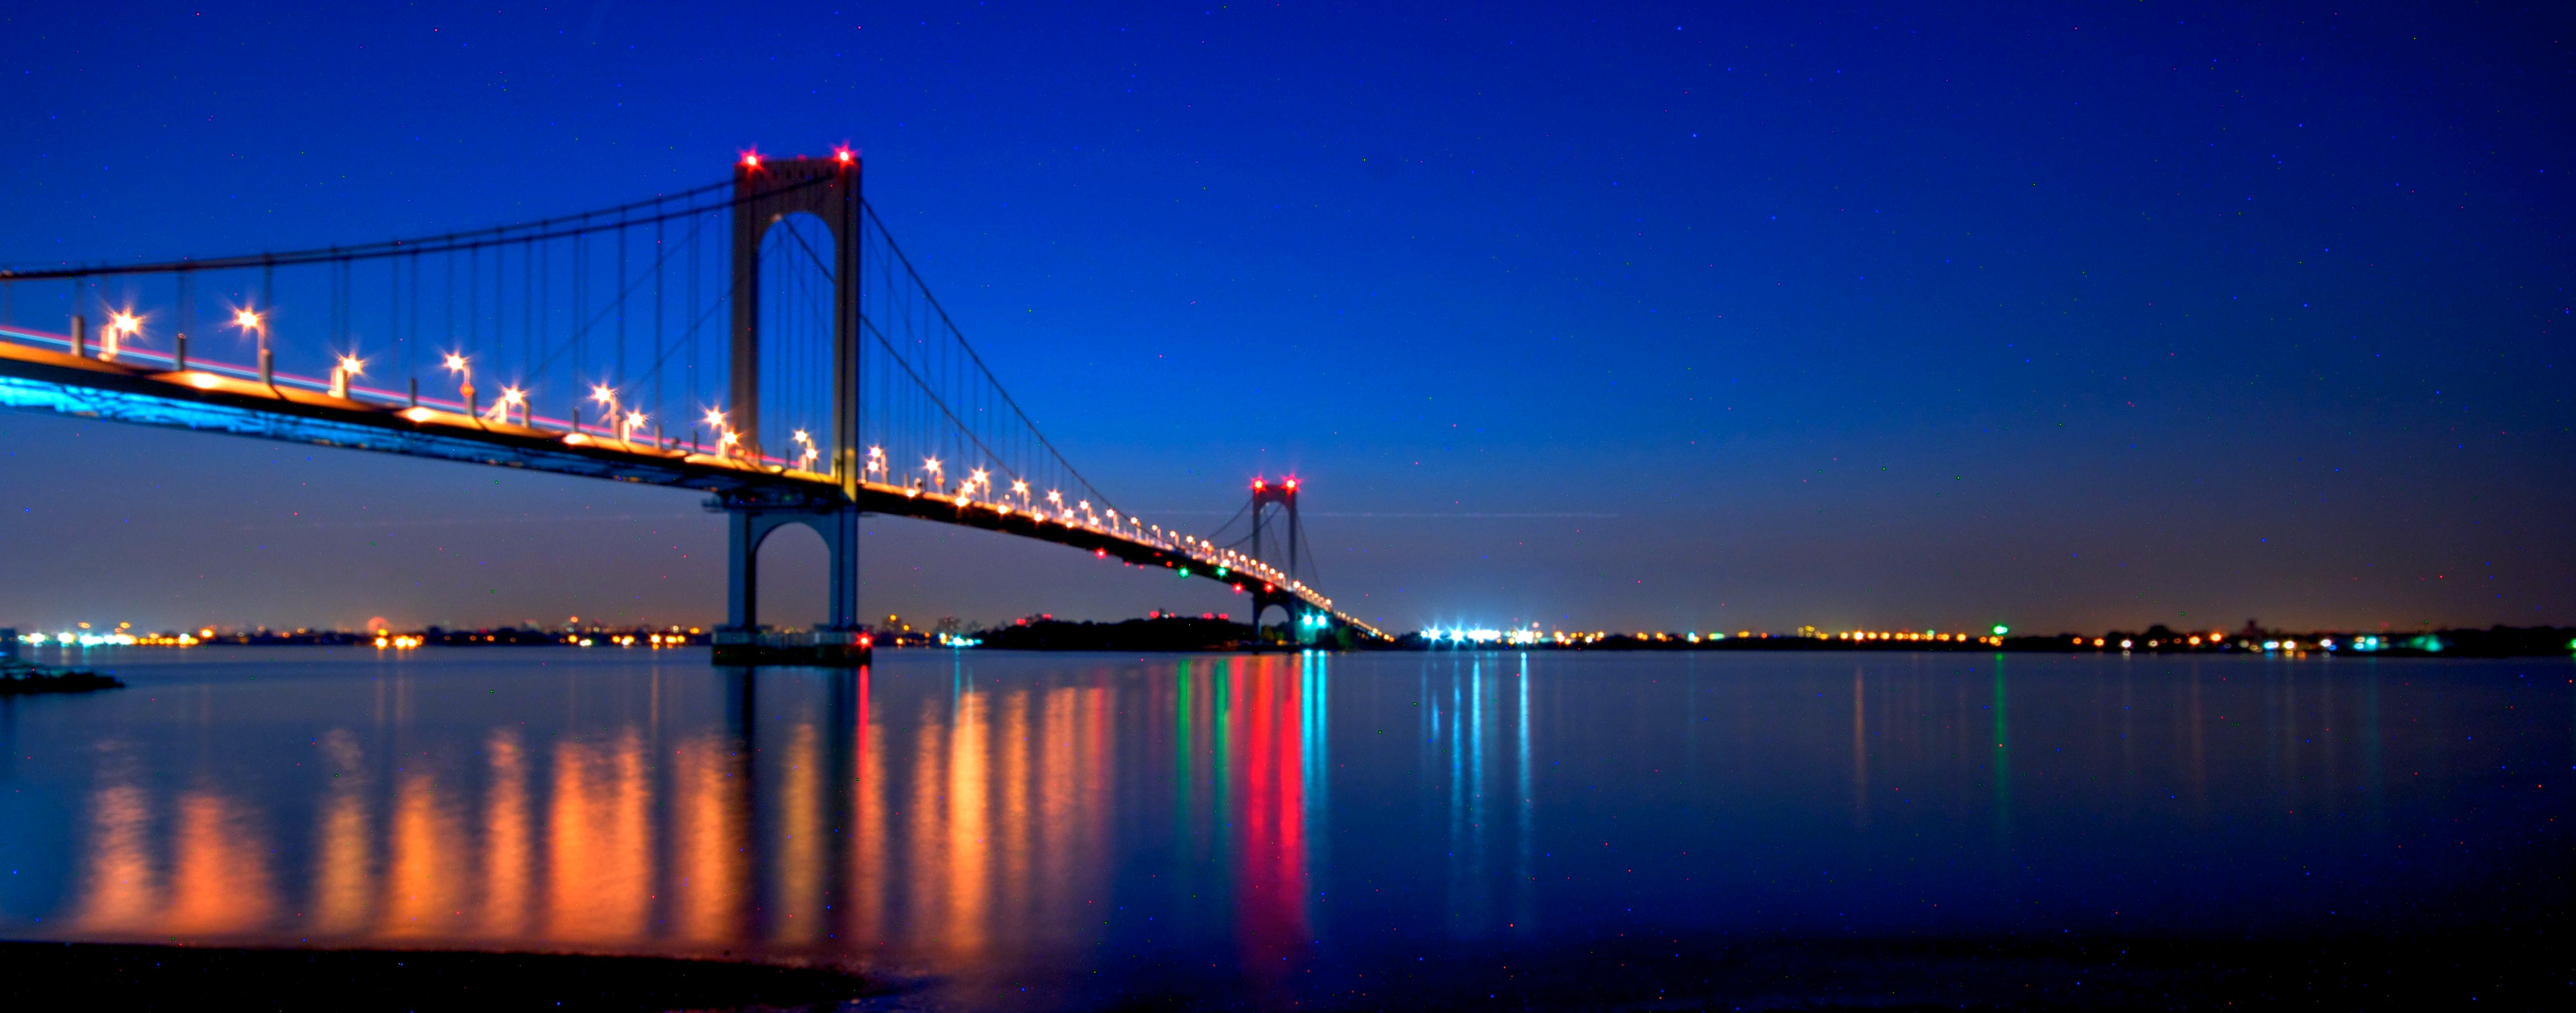 Whitestone Bridge.jpg